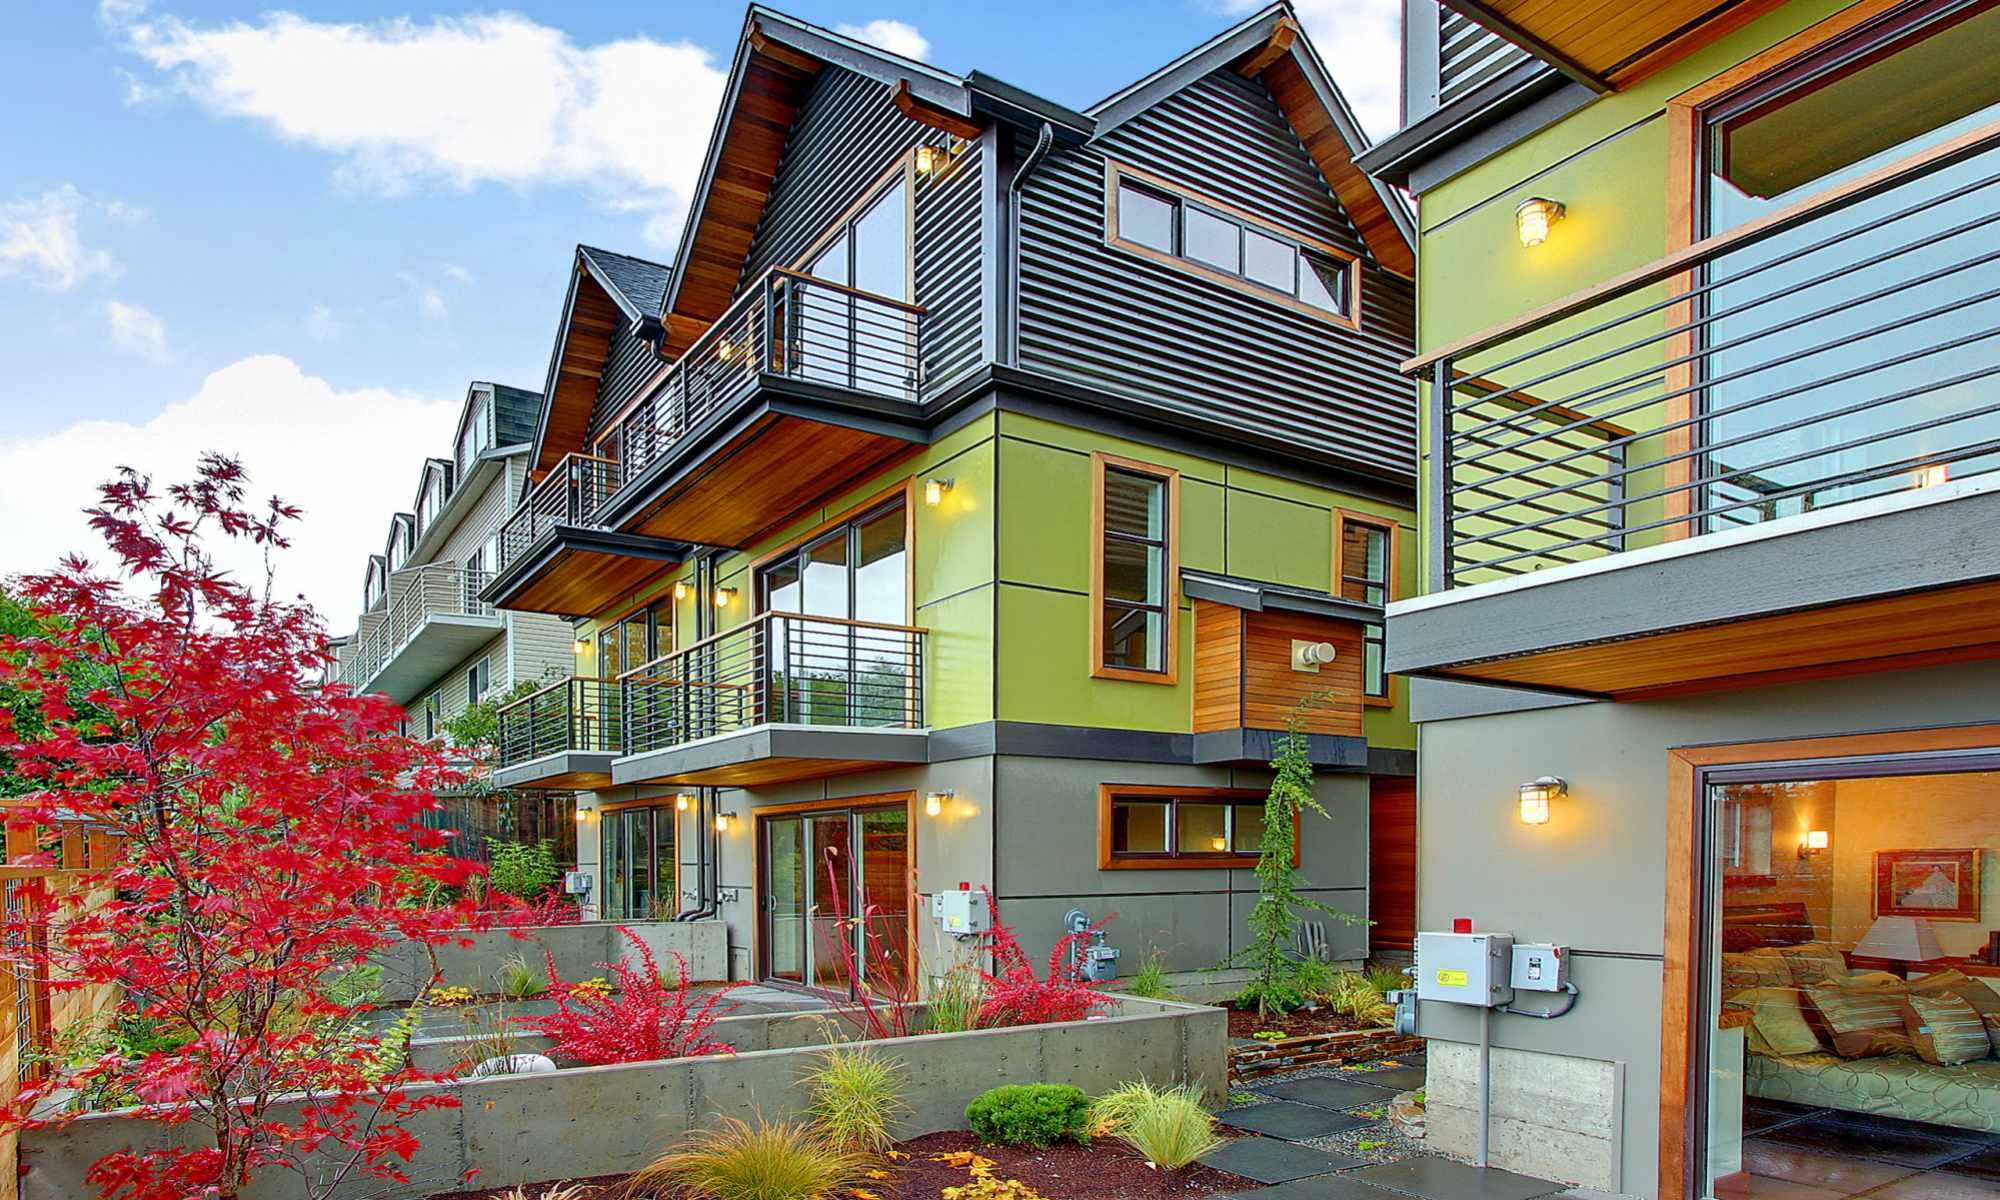 seattle homes for sale our communities isola homes. Black Bedroom Furniture Sets. Home Design Ideas